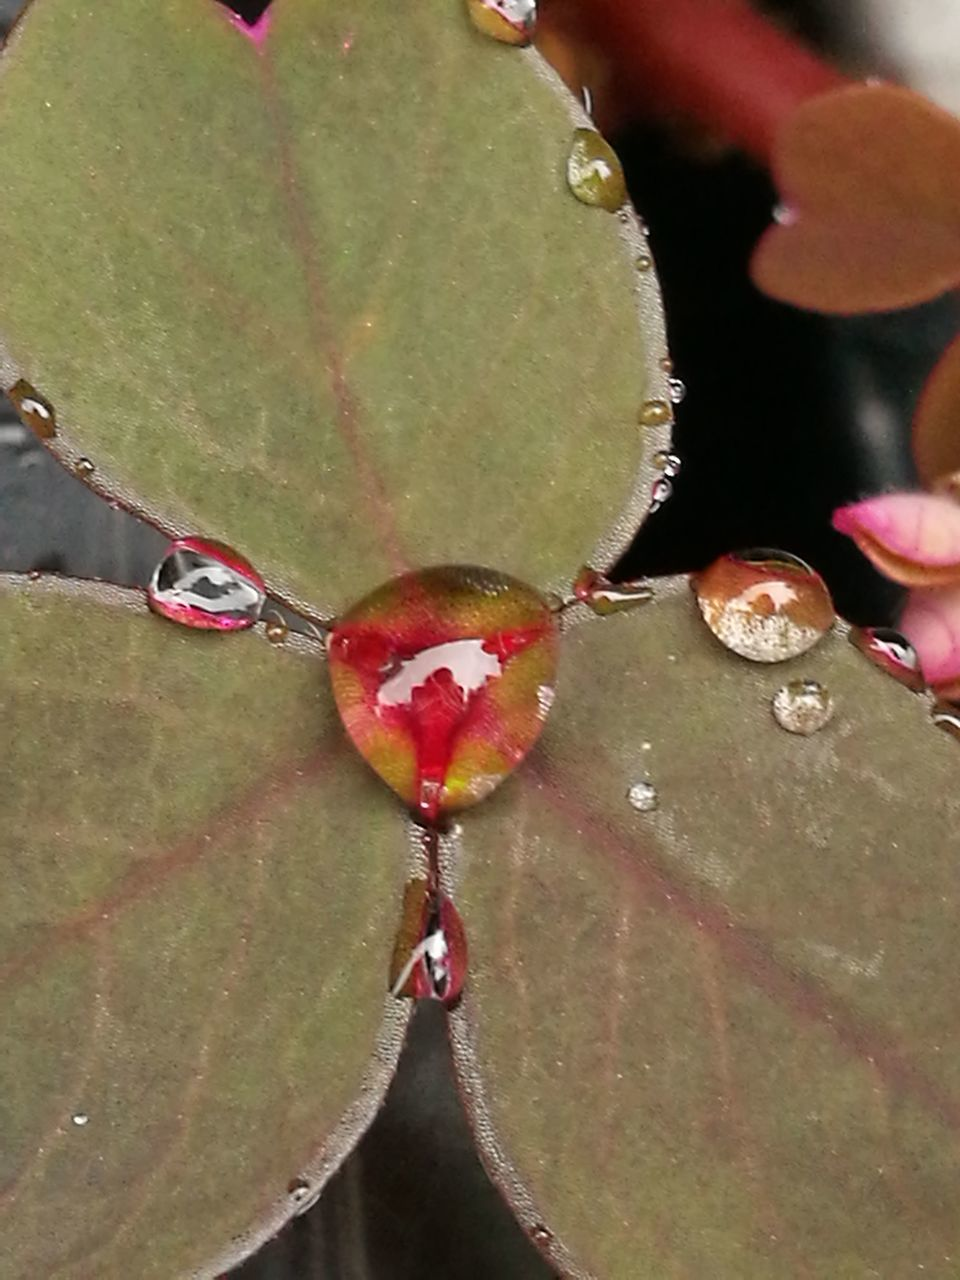 leaf, outdoors, nature, close-up, water, day, growth, beauty in nature, autumn, red, change, no people, plant, maple, freshness